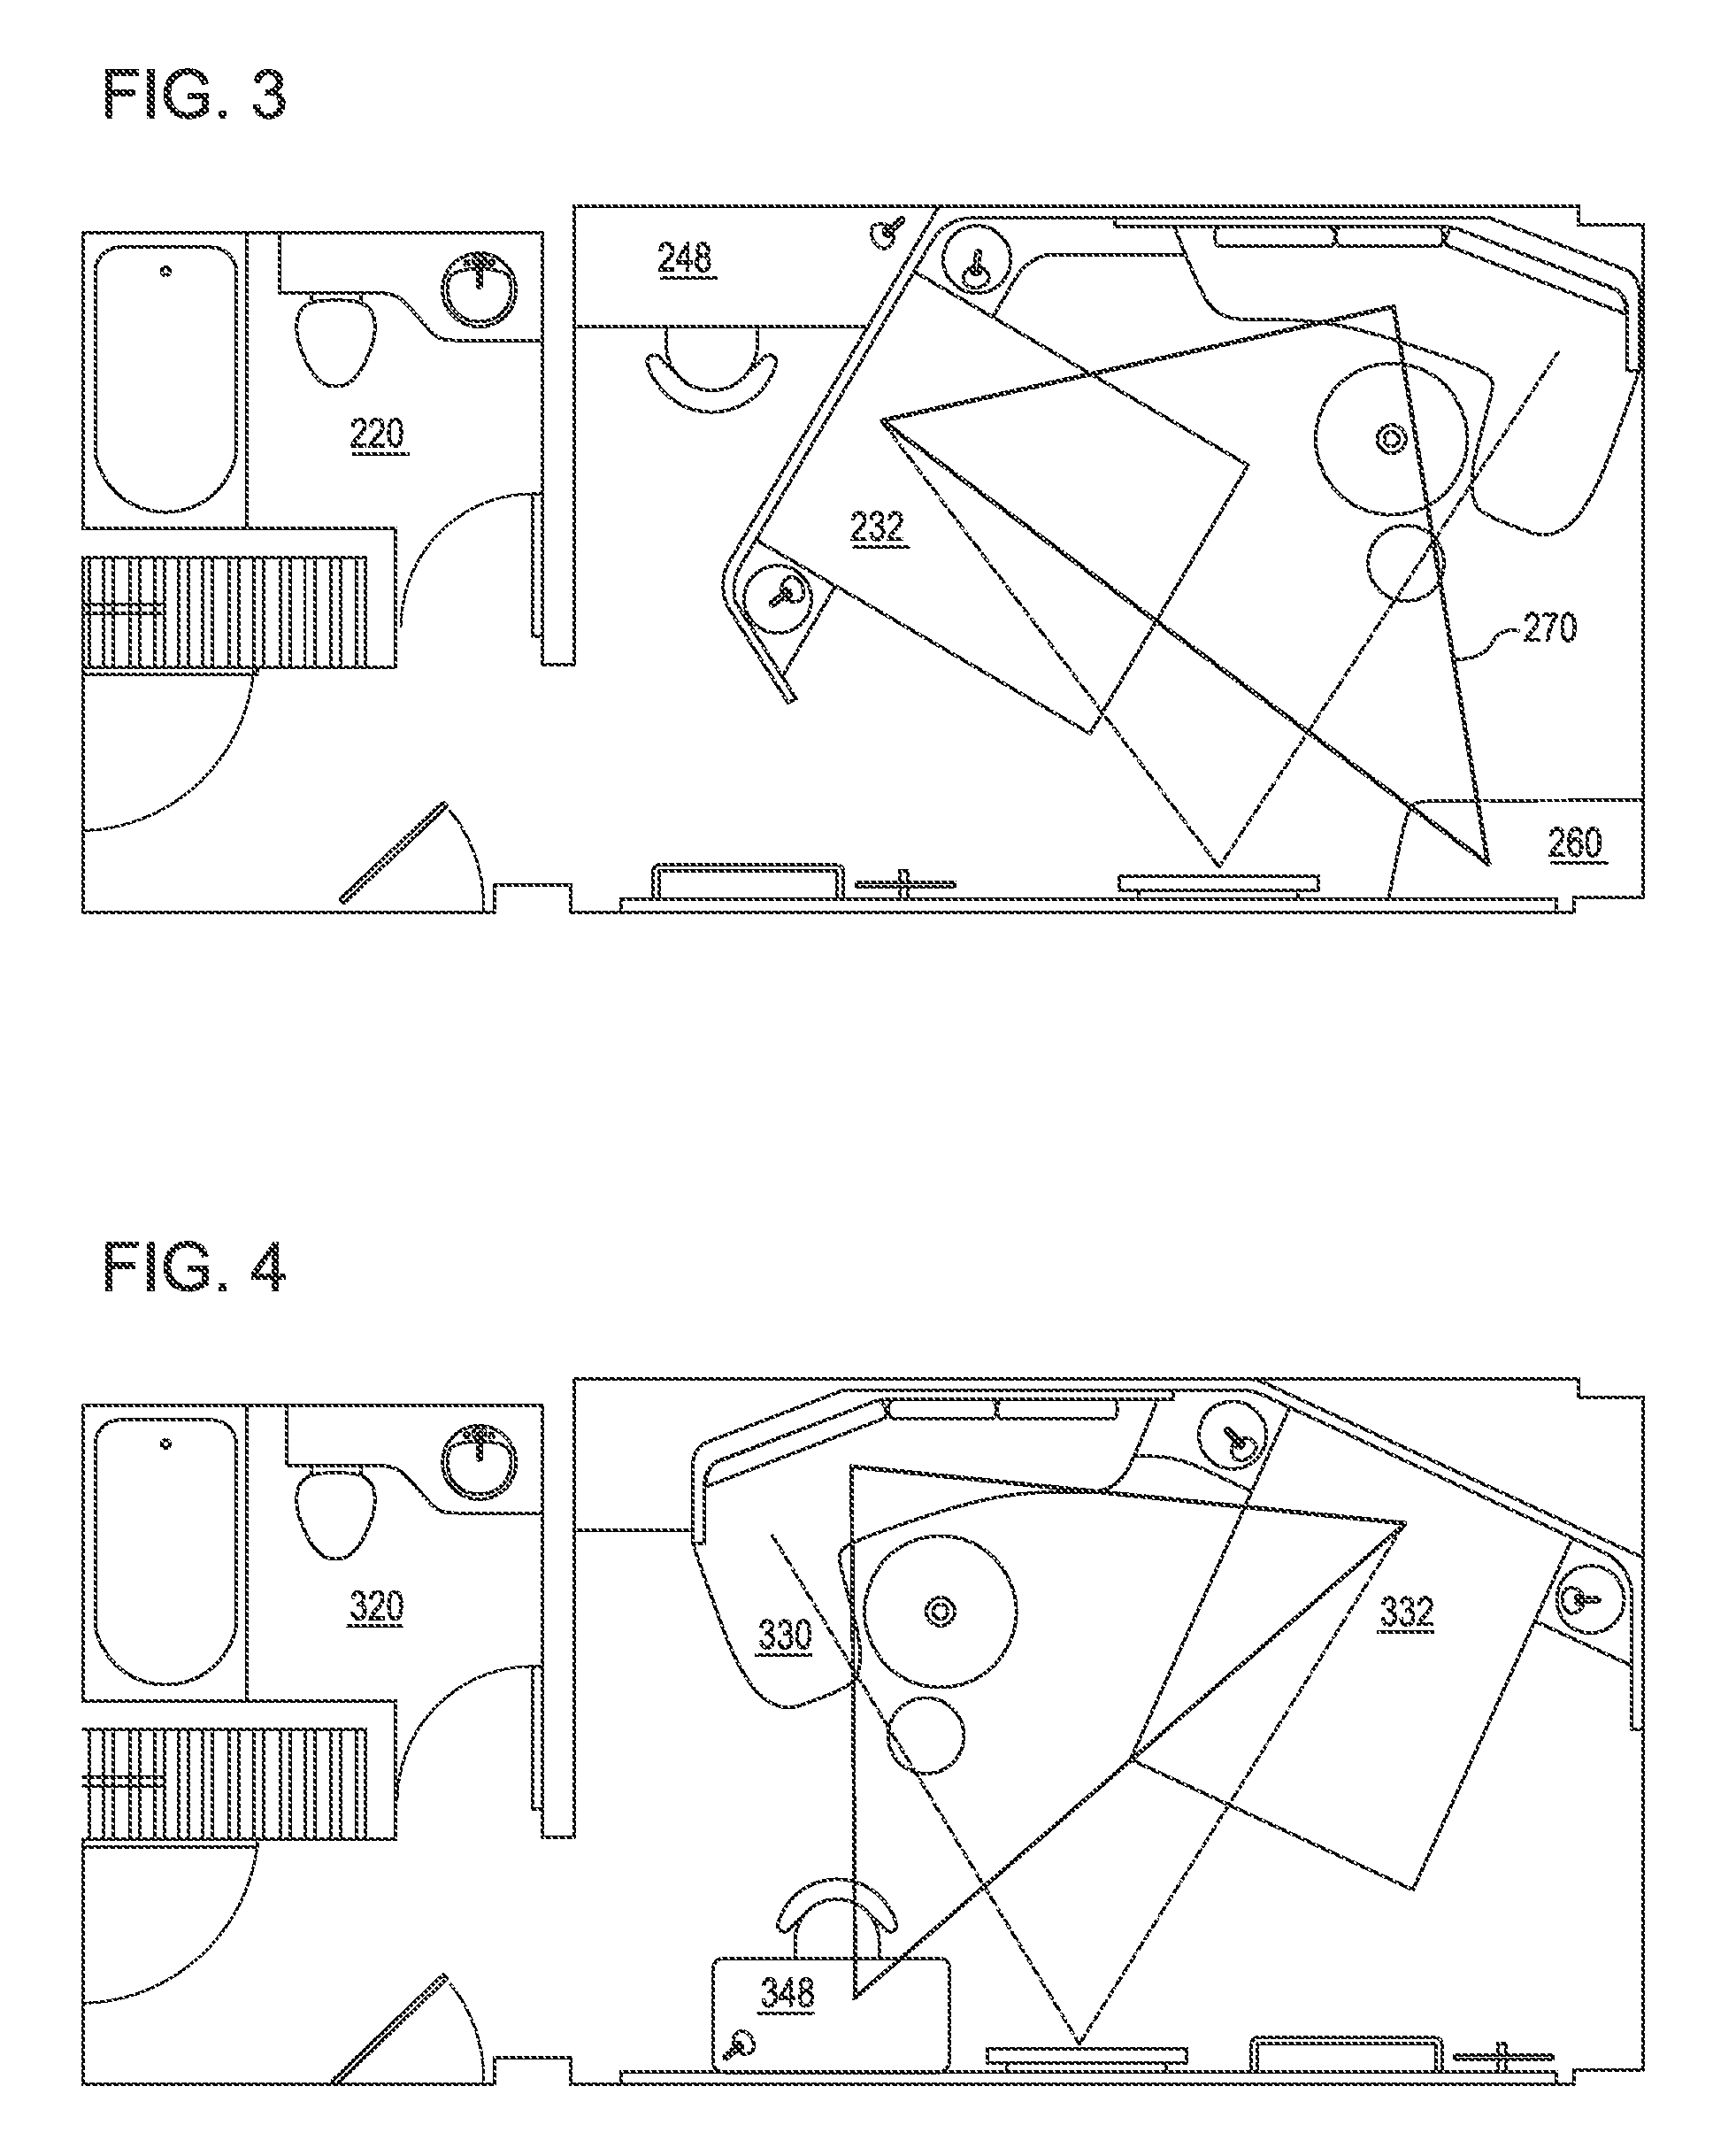 Picture from the U.S. Patent No. 9,194,143